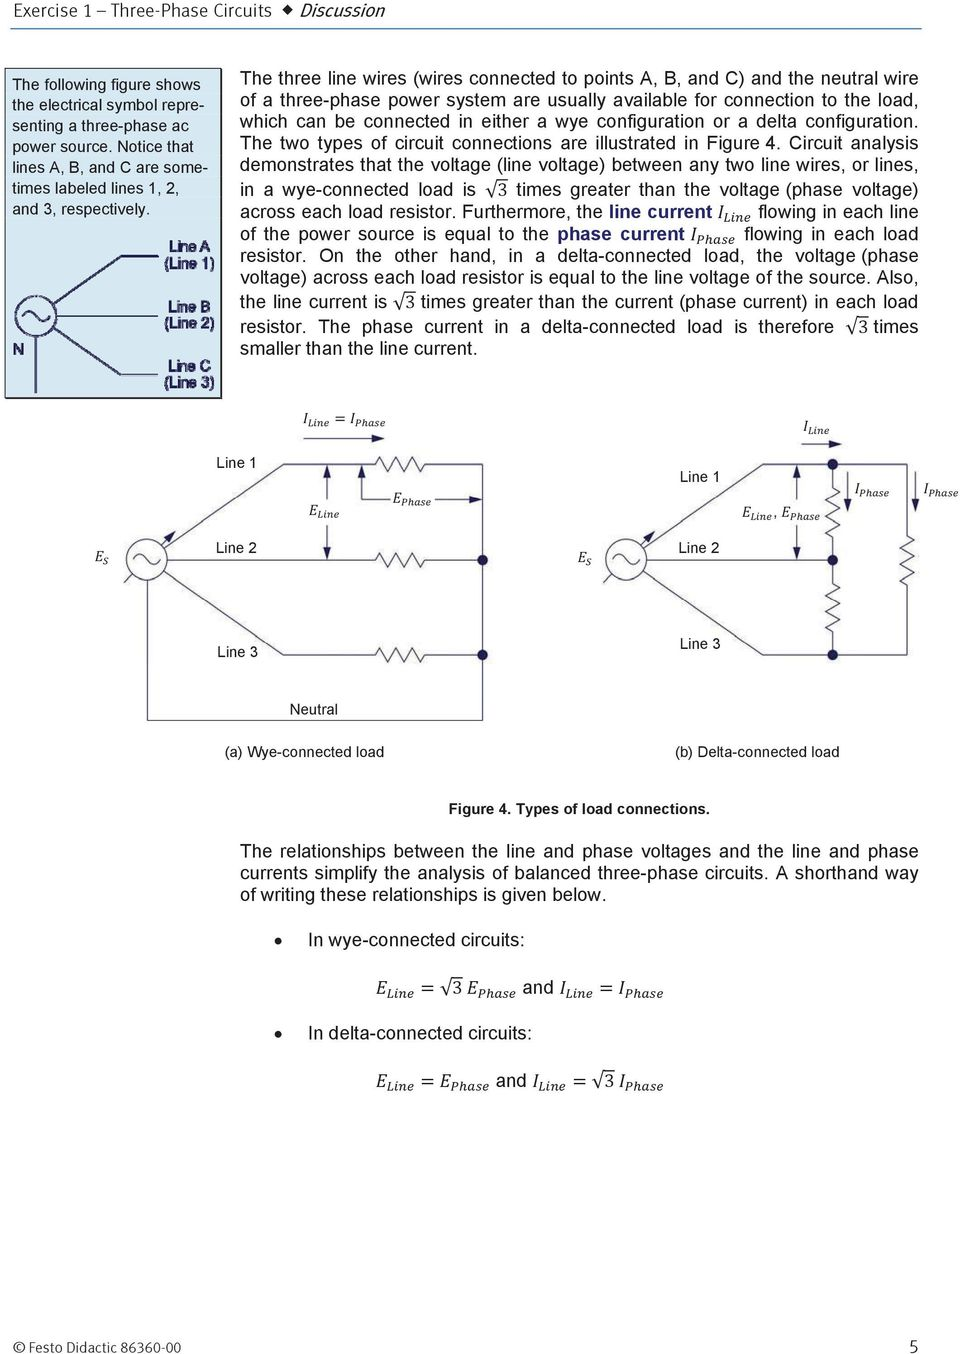 Three Phase Ac Power Circuits Pdf Wiring Diagram C Neutral Wire Will Be Connected To The Line Wires Points A B And